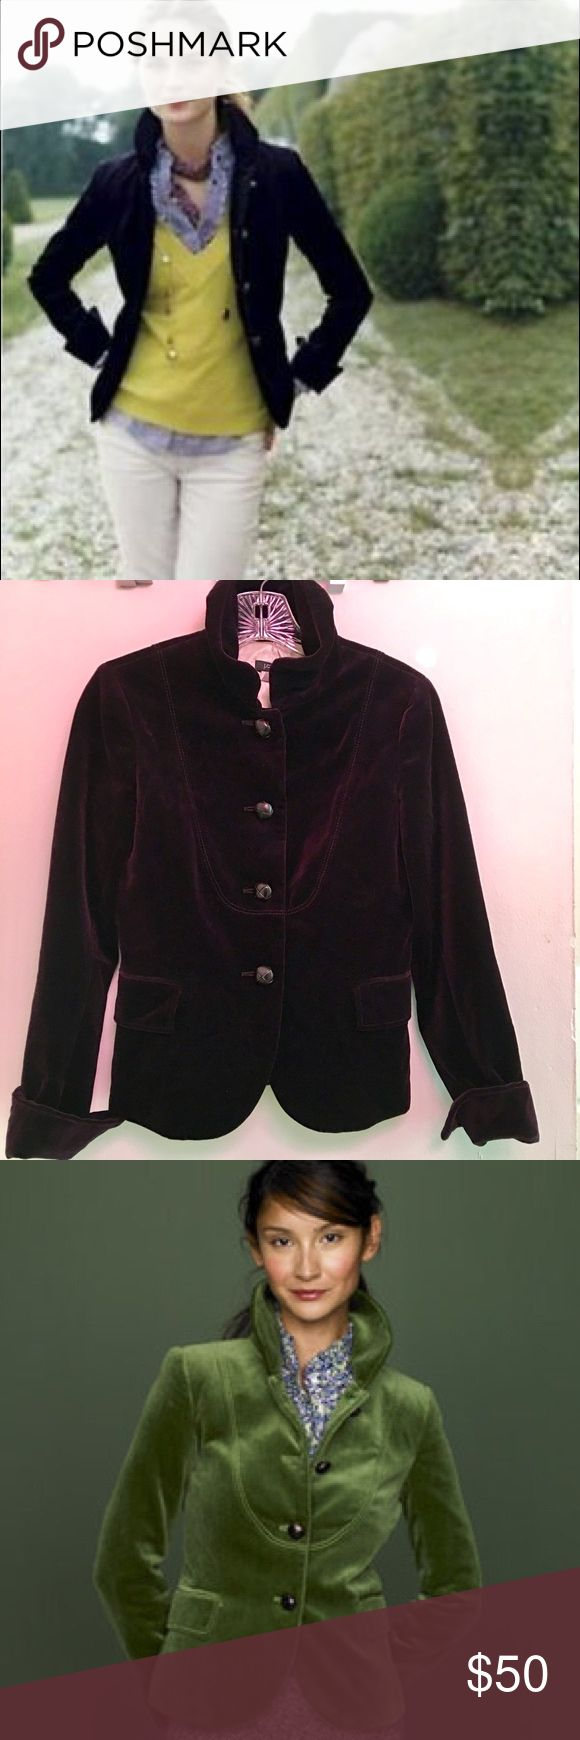 "J Crew Velvet Bella Jacket J Crew Velvet Bella Blazer in Deep Purple.  Fully lined, stand up ruffle collar, cuff sleeves, leather knot buttons.   **** Jacket for sale is in the deep purple color   🌺Chest: 17"" (armpit to armpit - flat lay) 🌺Length: 21.5"" (shoulder to hem) J. Crew Jackets & Coats"